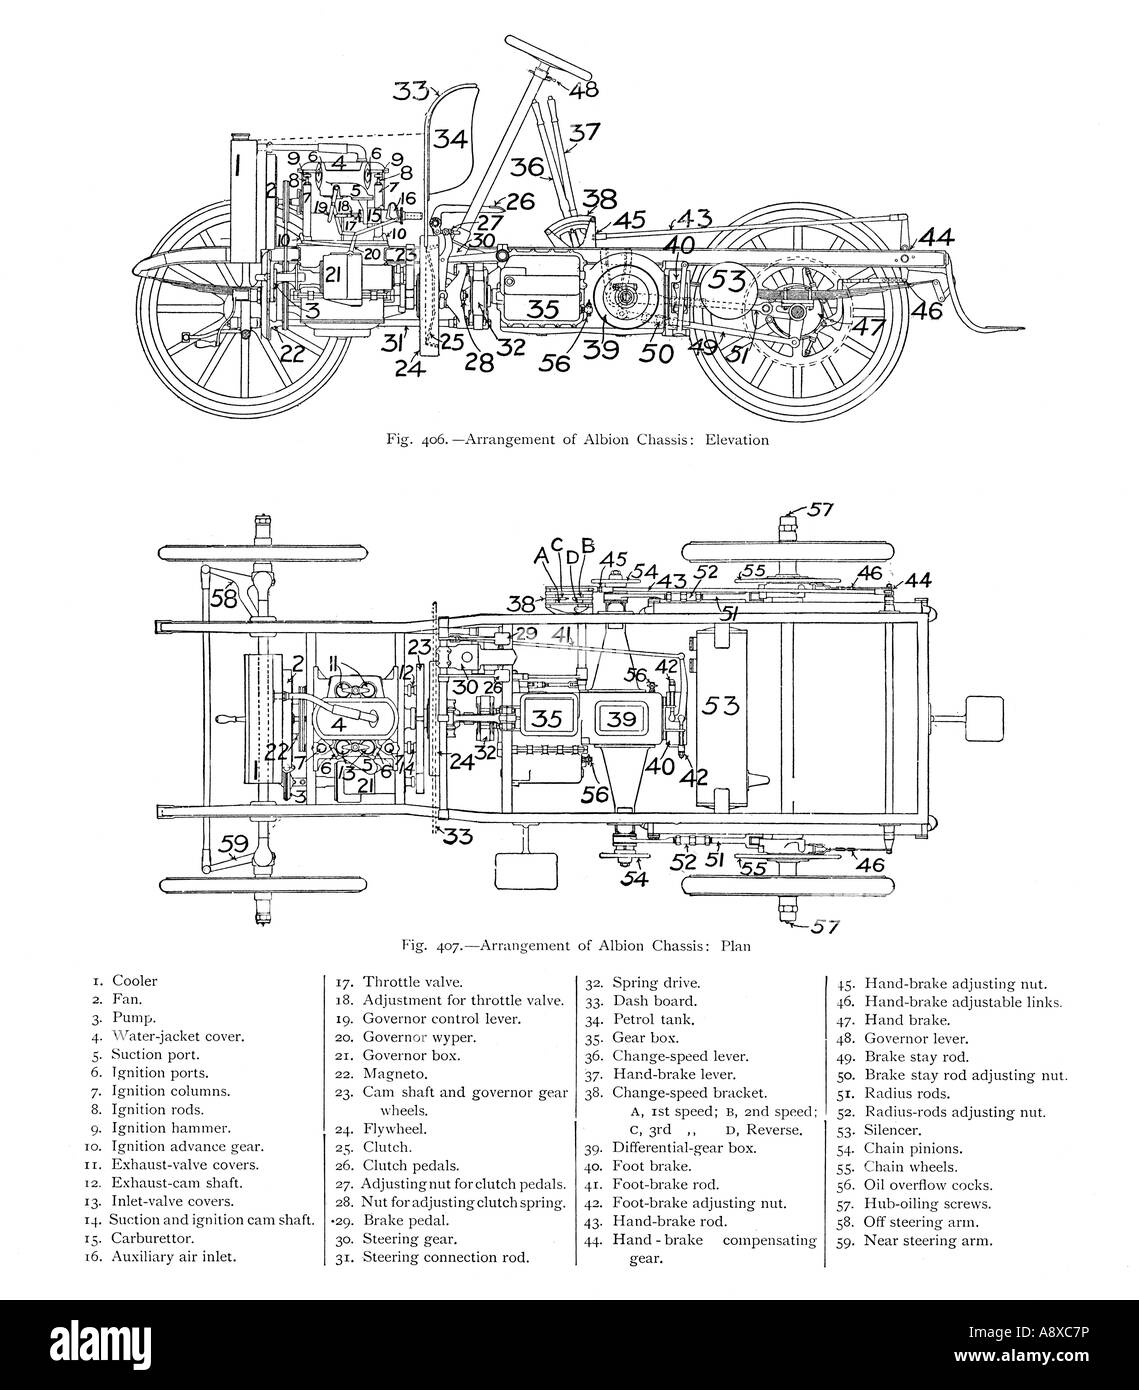 Petrol Engine Stock Photos Images Alamy Honda Lawn Mower Carburetor Linkage Diagram To Download Of Albion 6 Horse Power Car Image